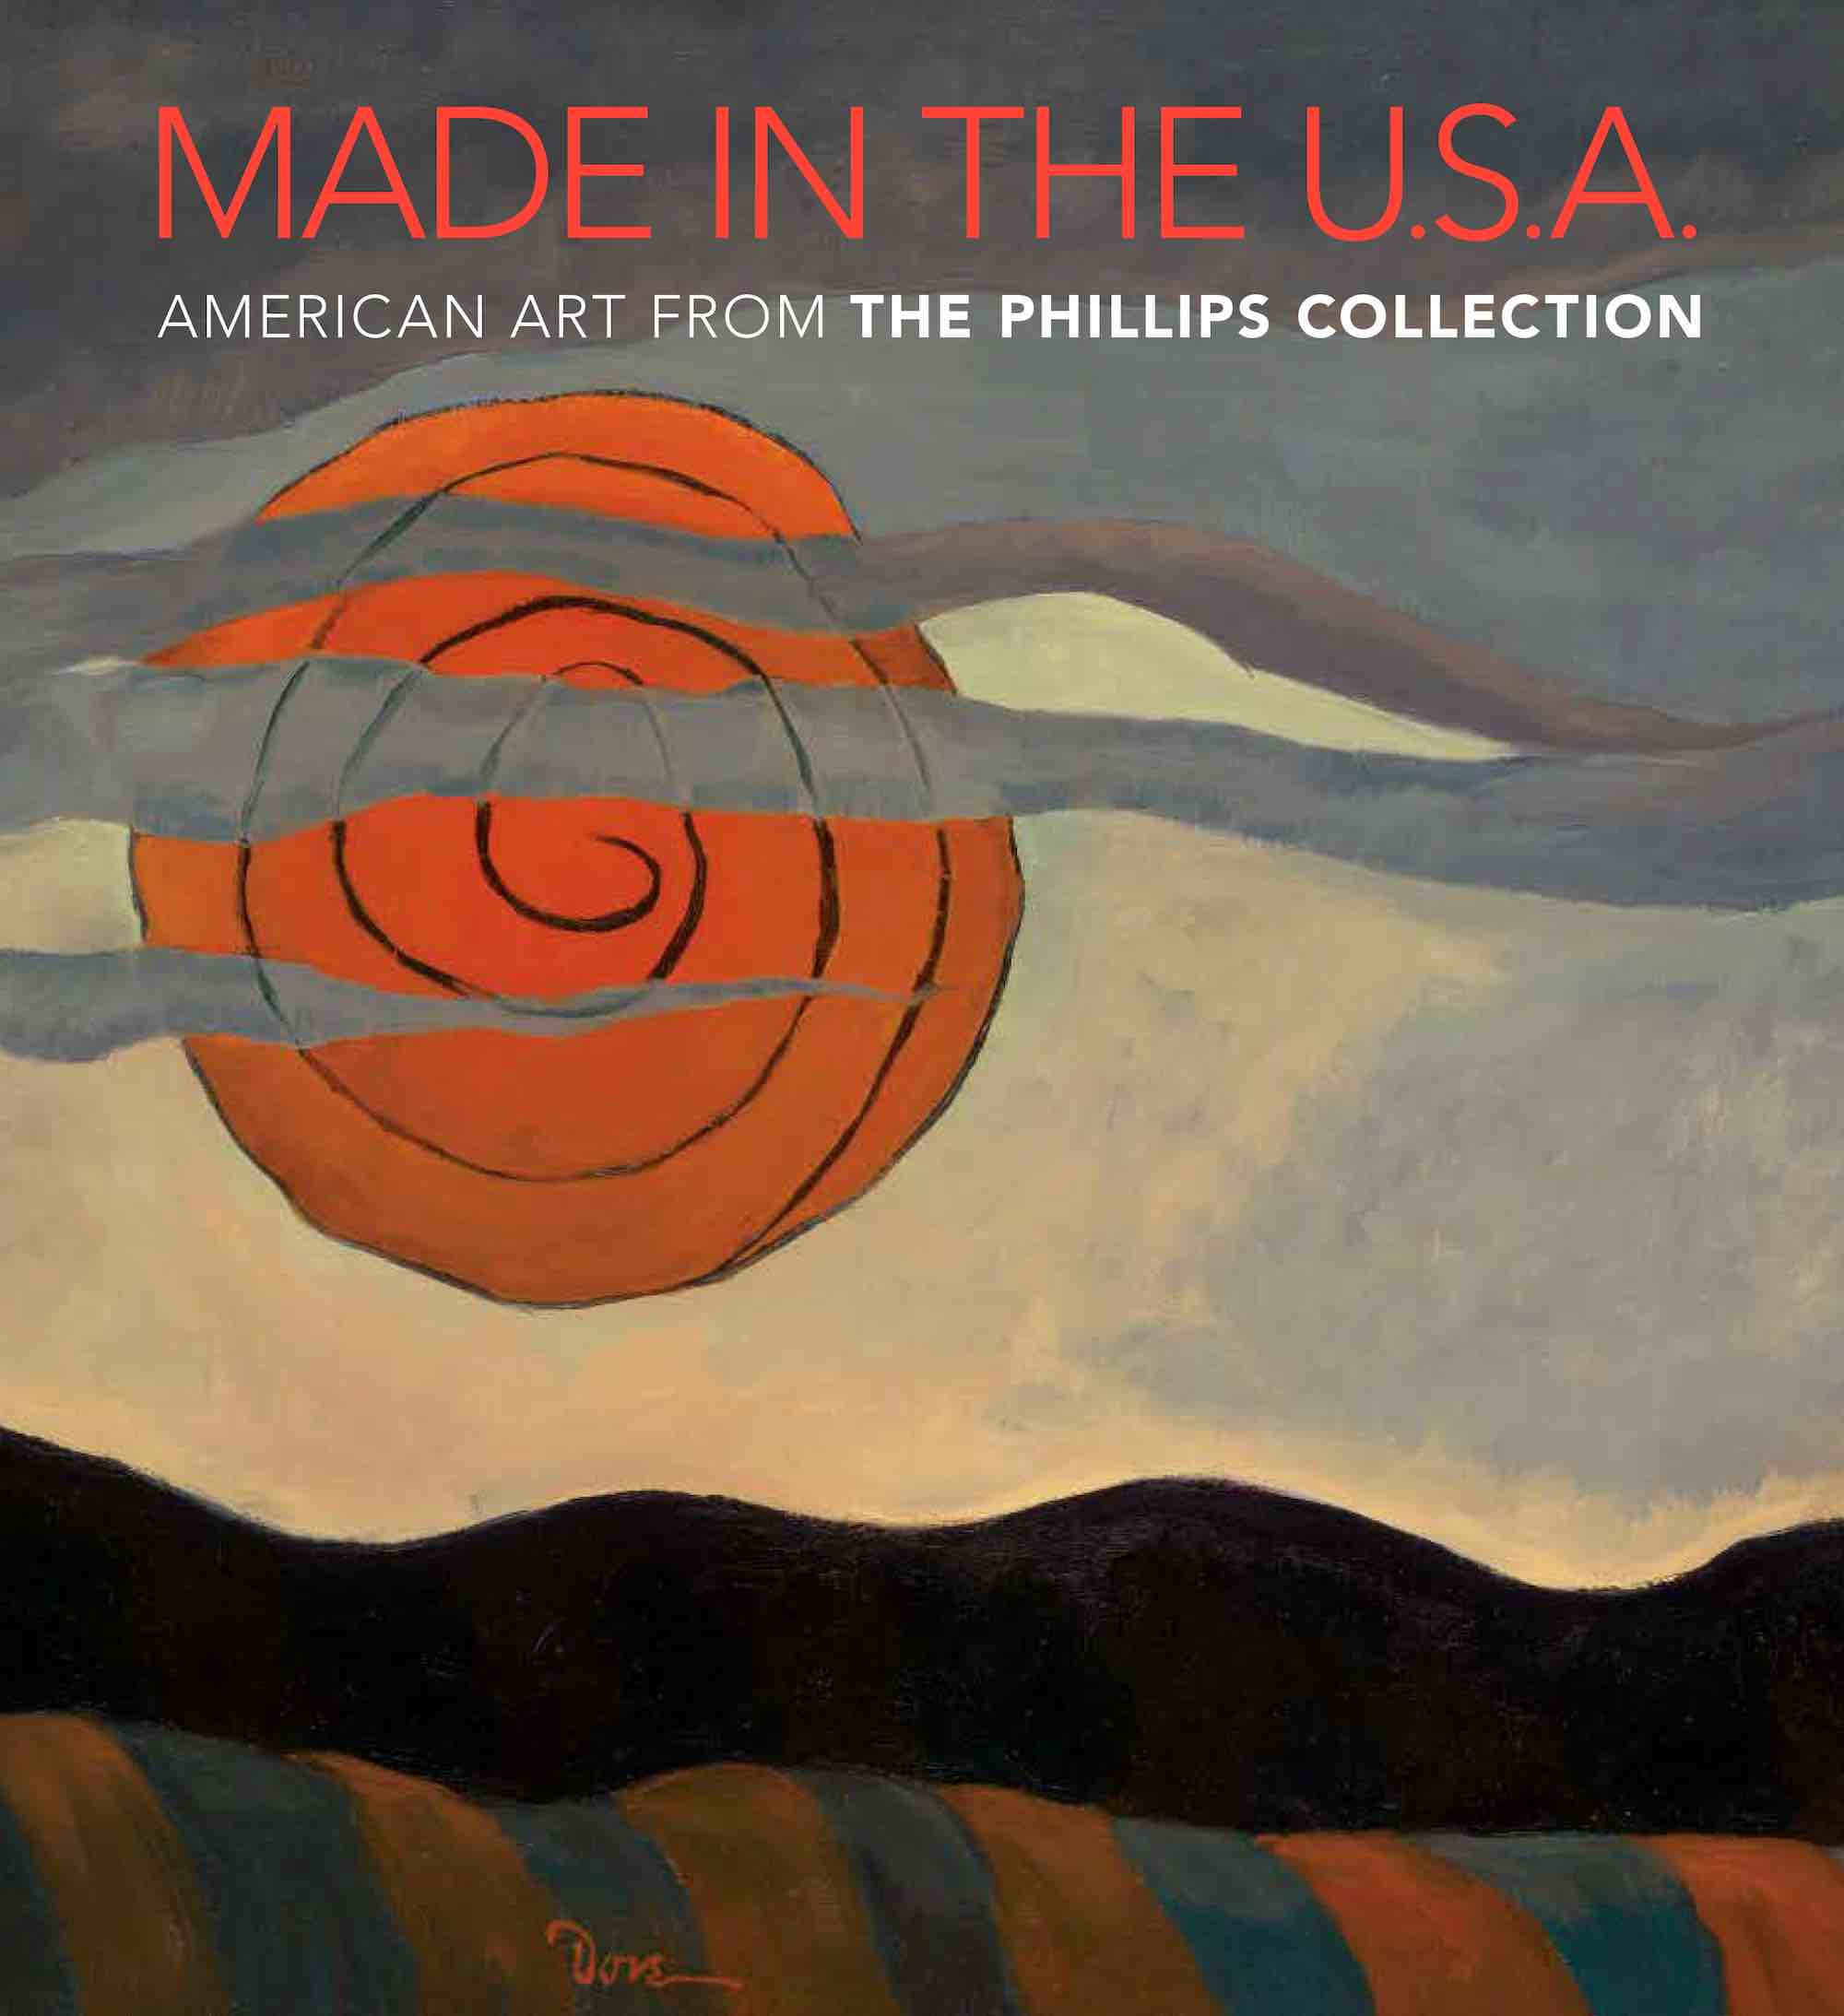 Susan Behrends Frank, Made in the U.S.A.: American Art from The Phillips Collection. Yale University Press.